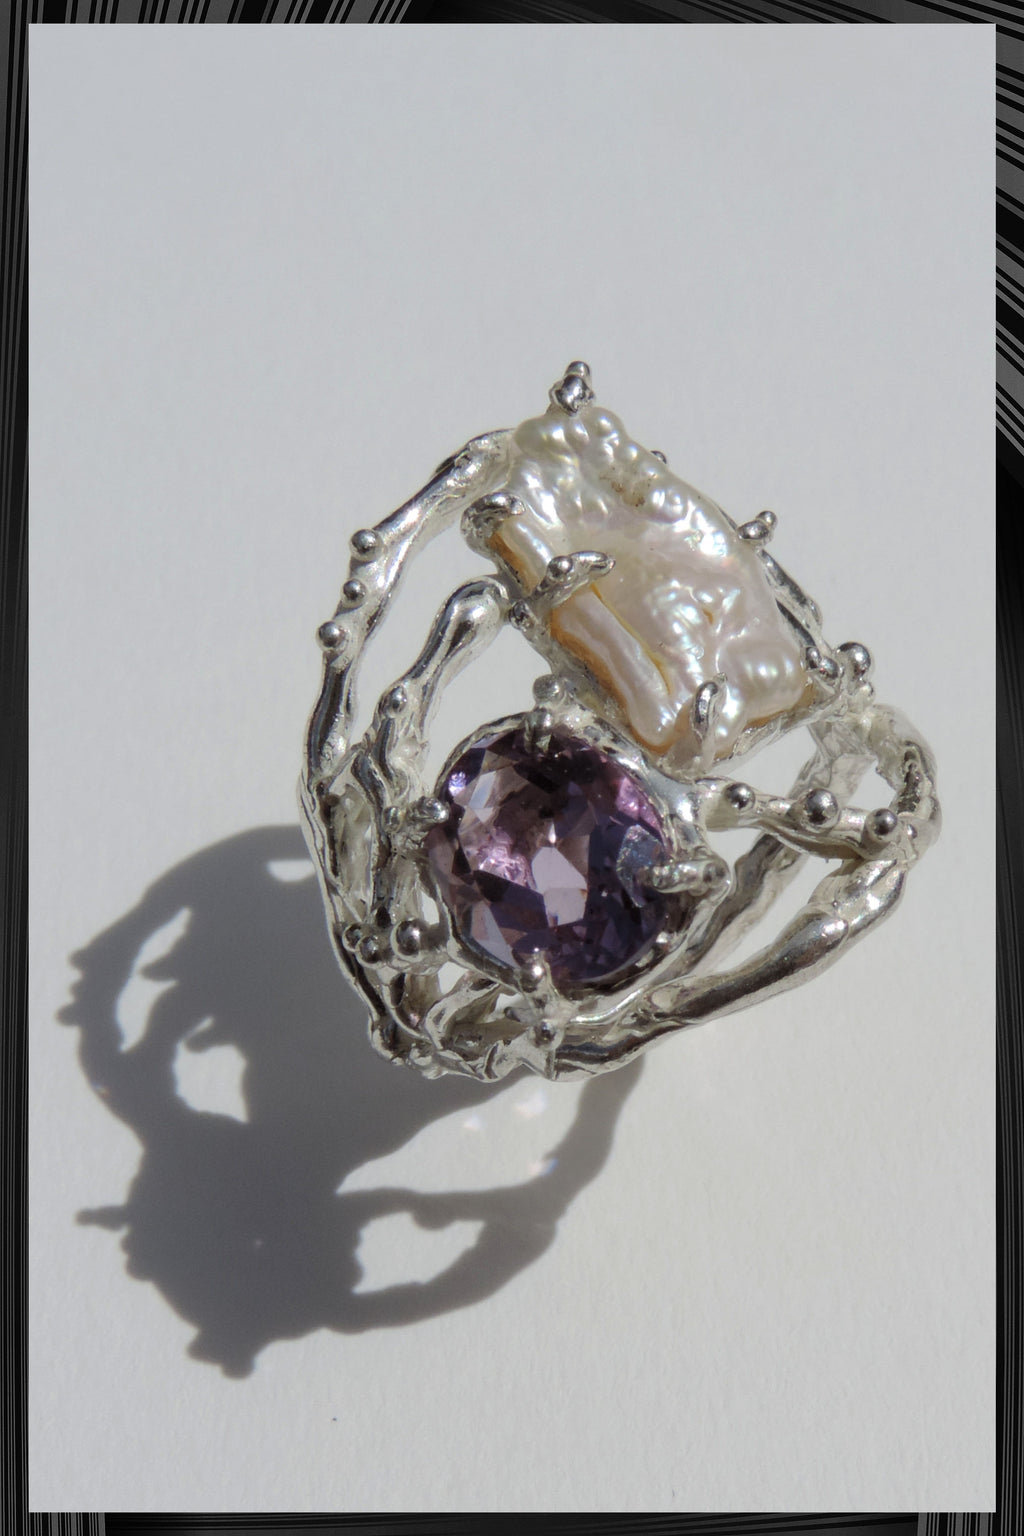 The Amethyst and Pearl Ring